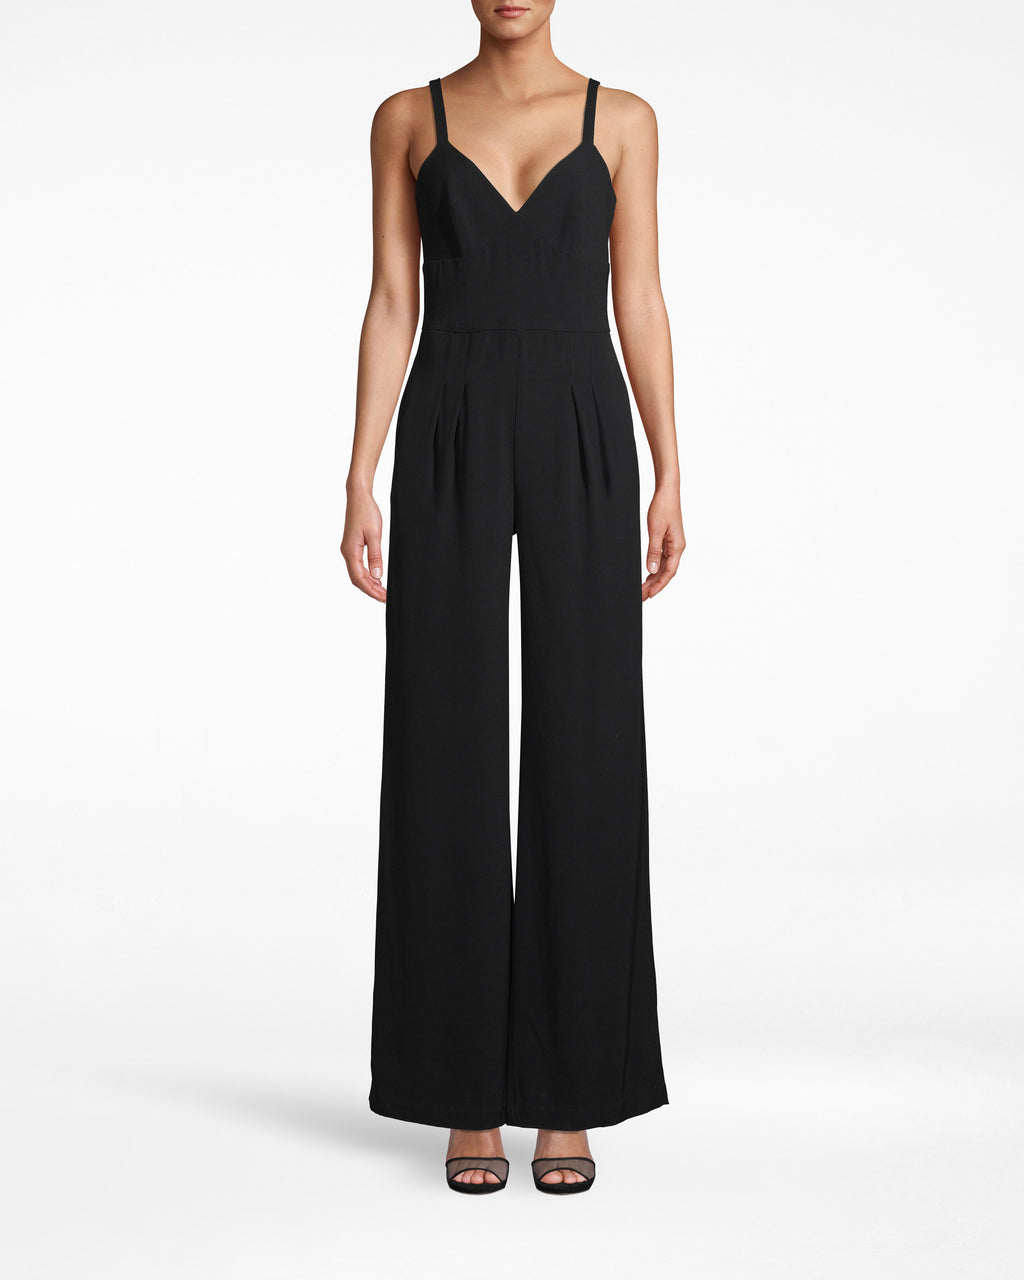 "CP18064 - SATIN BACK CREPE ""MOLLY"" JUMPSUIT - bottoms - pants - THIS CLASSIC JUMPSUIT EASILY TRANSITIONS FROM SEASON TO SEASON. MADE FROM SMOOTH SATIN BACK CREPE WITH SPAGHETTI STRAPS AND A SLIGHT PLEATED FRONT. Add 1 line break STYLIST TIP: WEAR WITH A DENIM JACKET AND SNEAKERS FOR A CASUAL LOOK OR HEELS AND STATEMENT FOR DRESSY OCCASIONS."